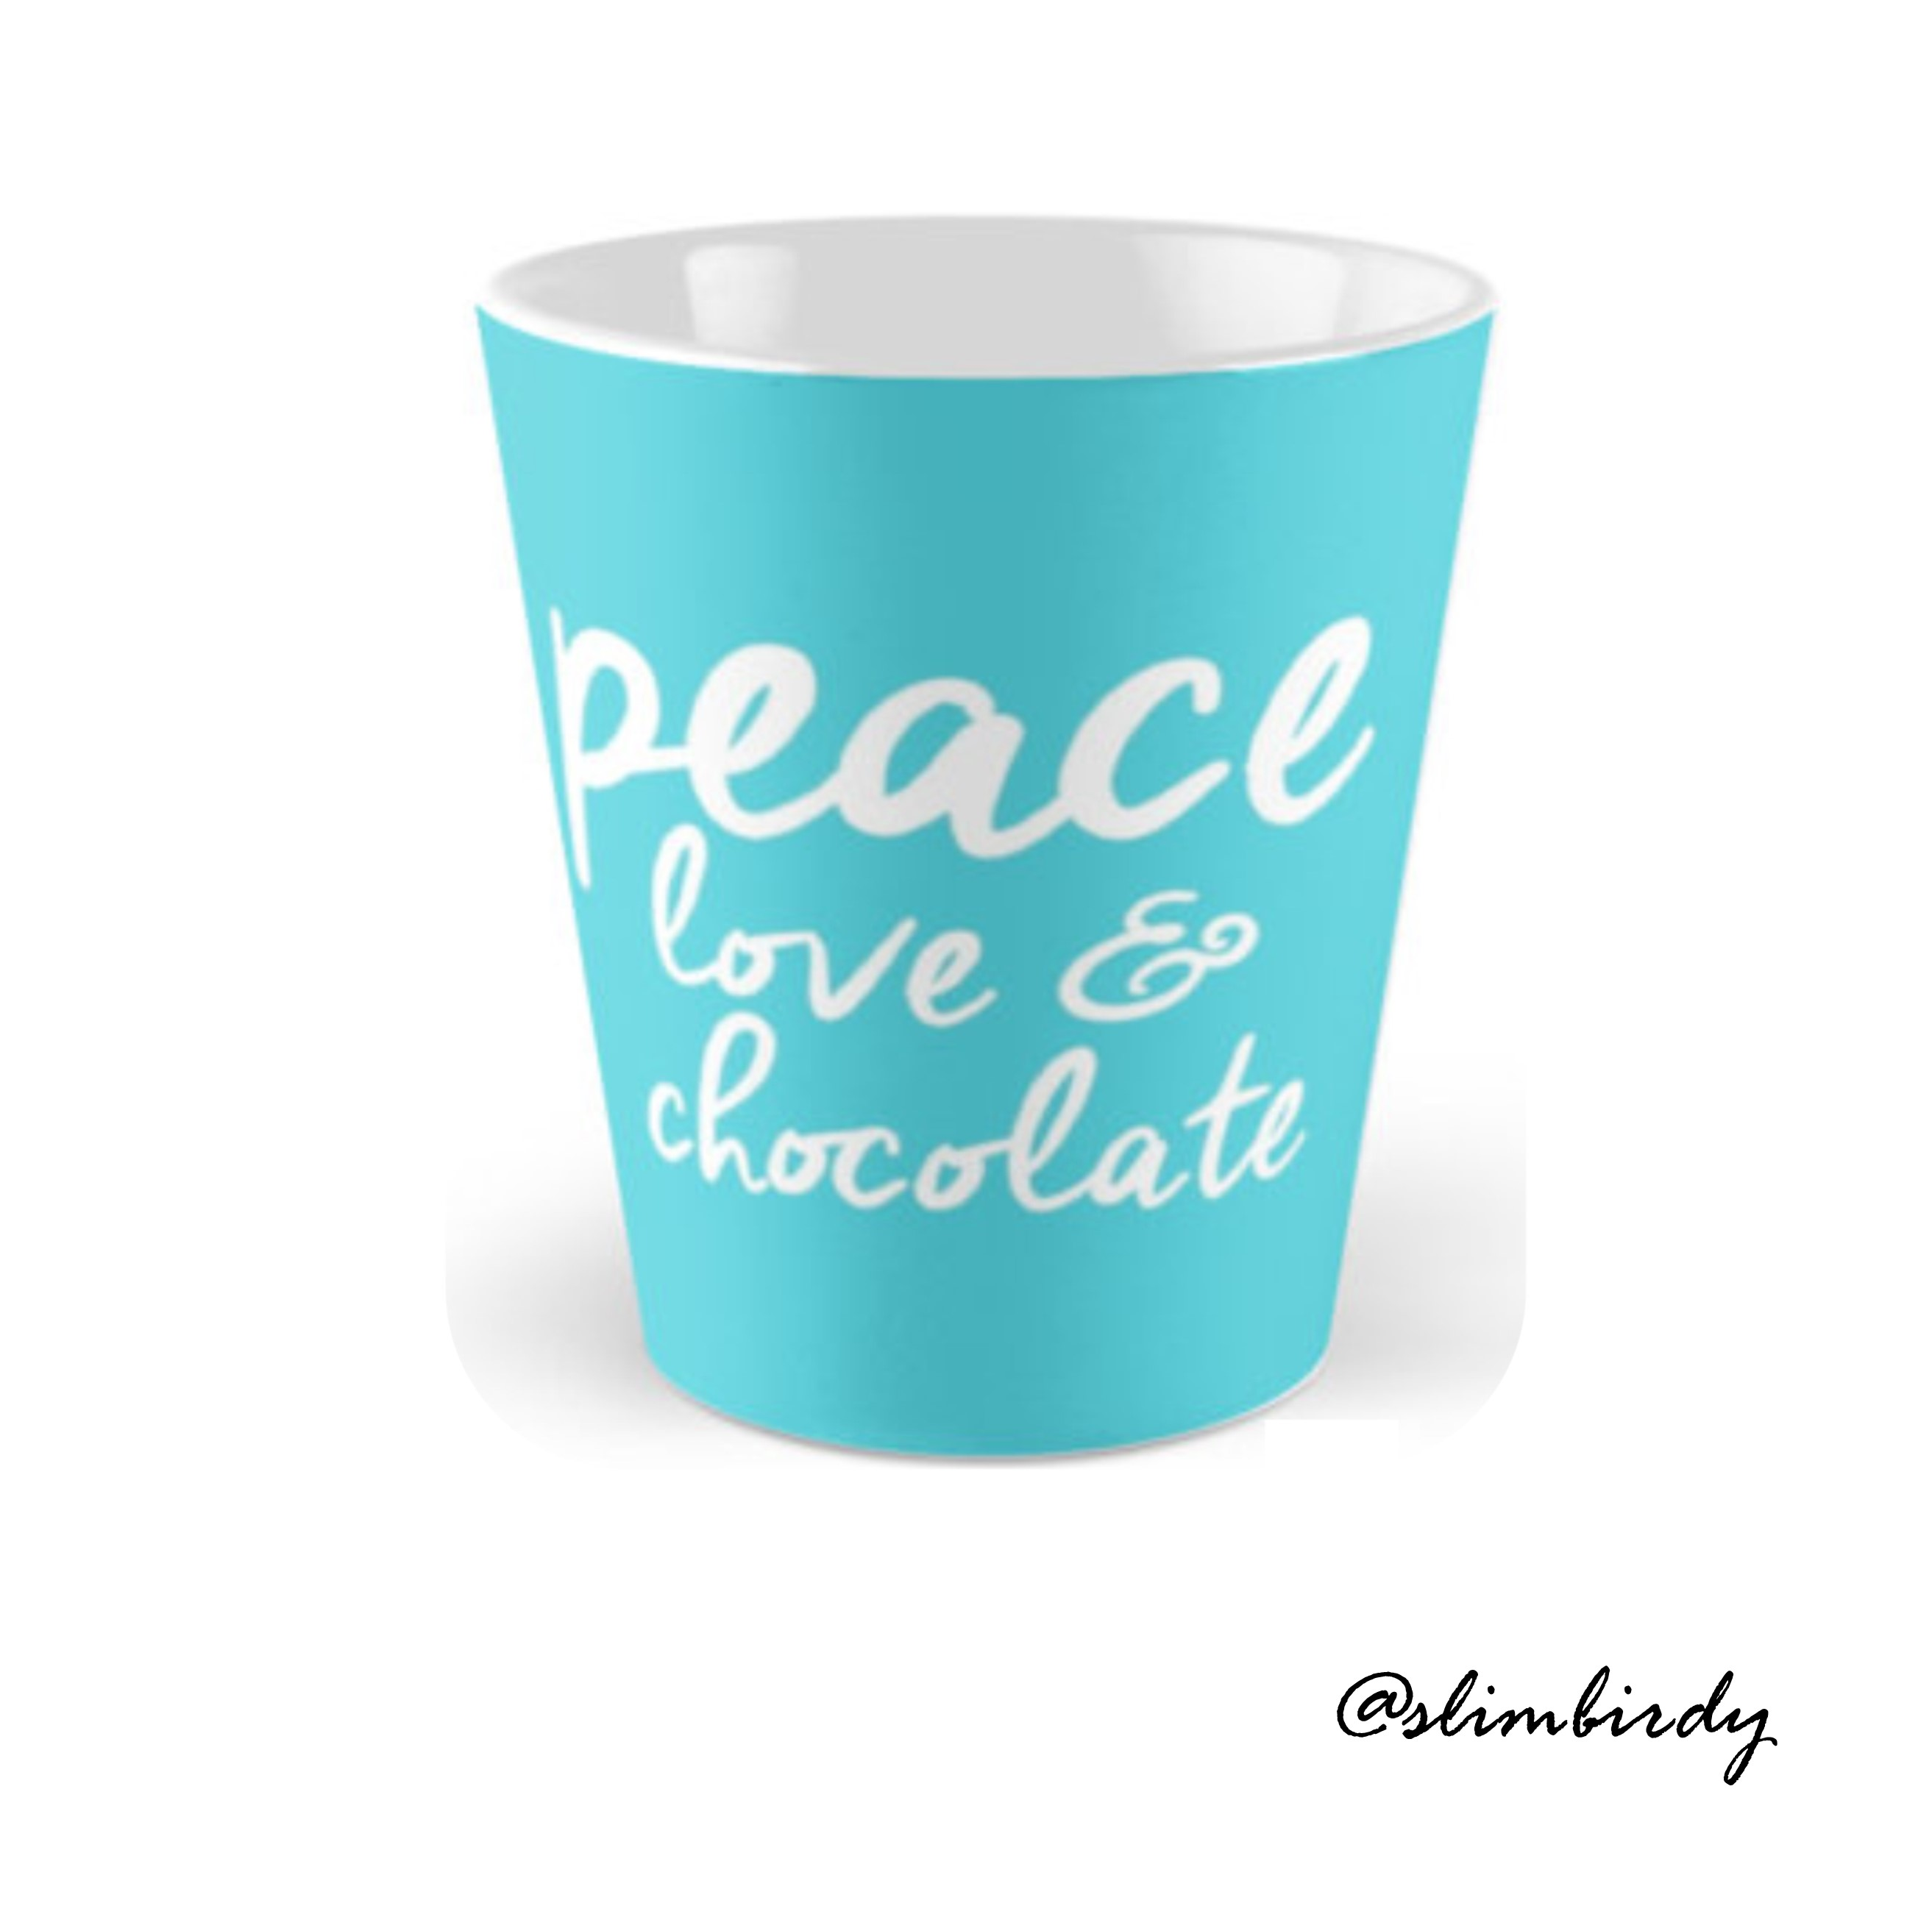 Peace, love, chocolate, aqua, decor, mug, alternative, relaxed